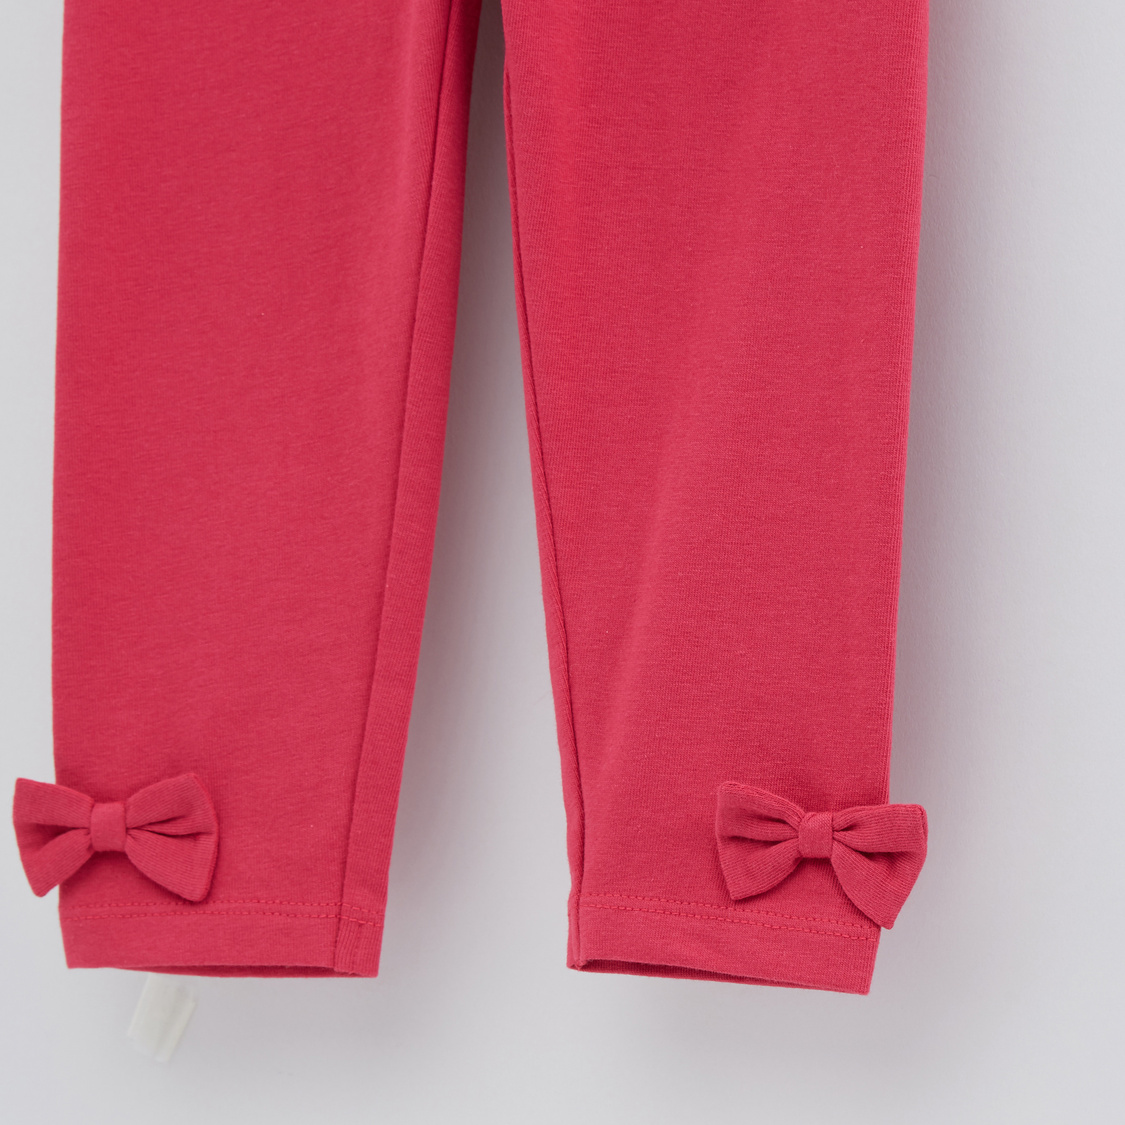 Full Length Leggings with Elasticised Waistband and Bow Appliques